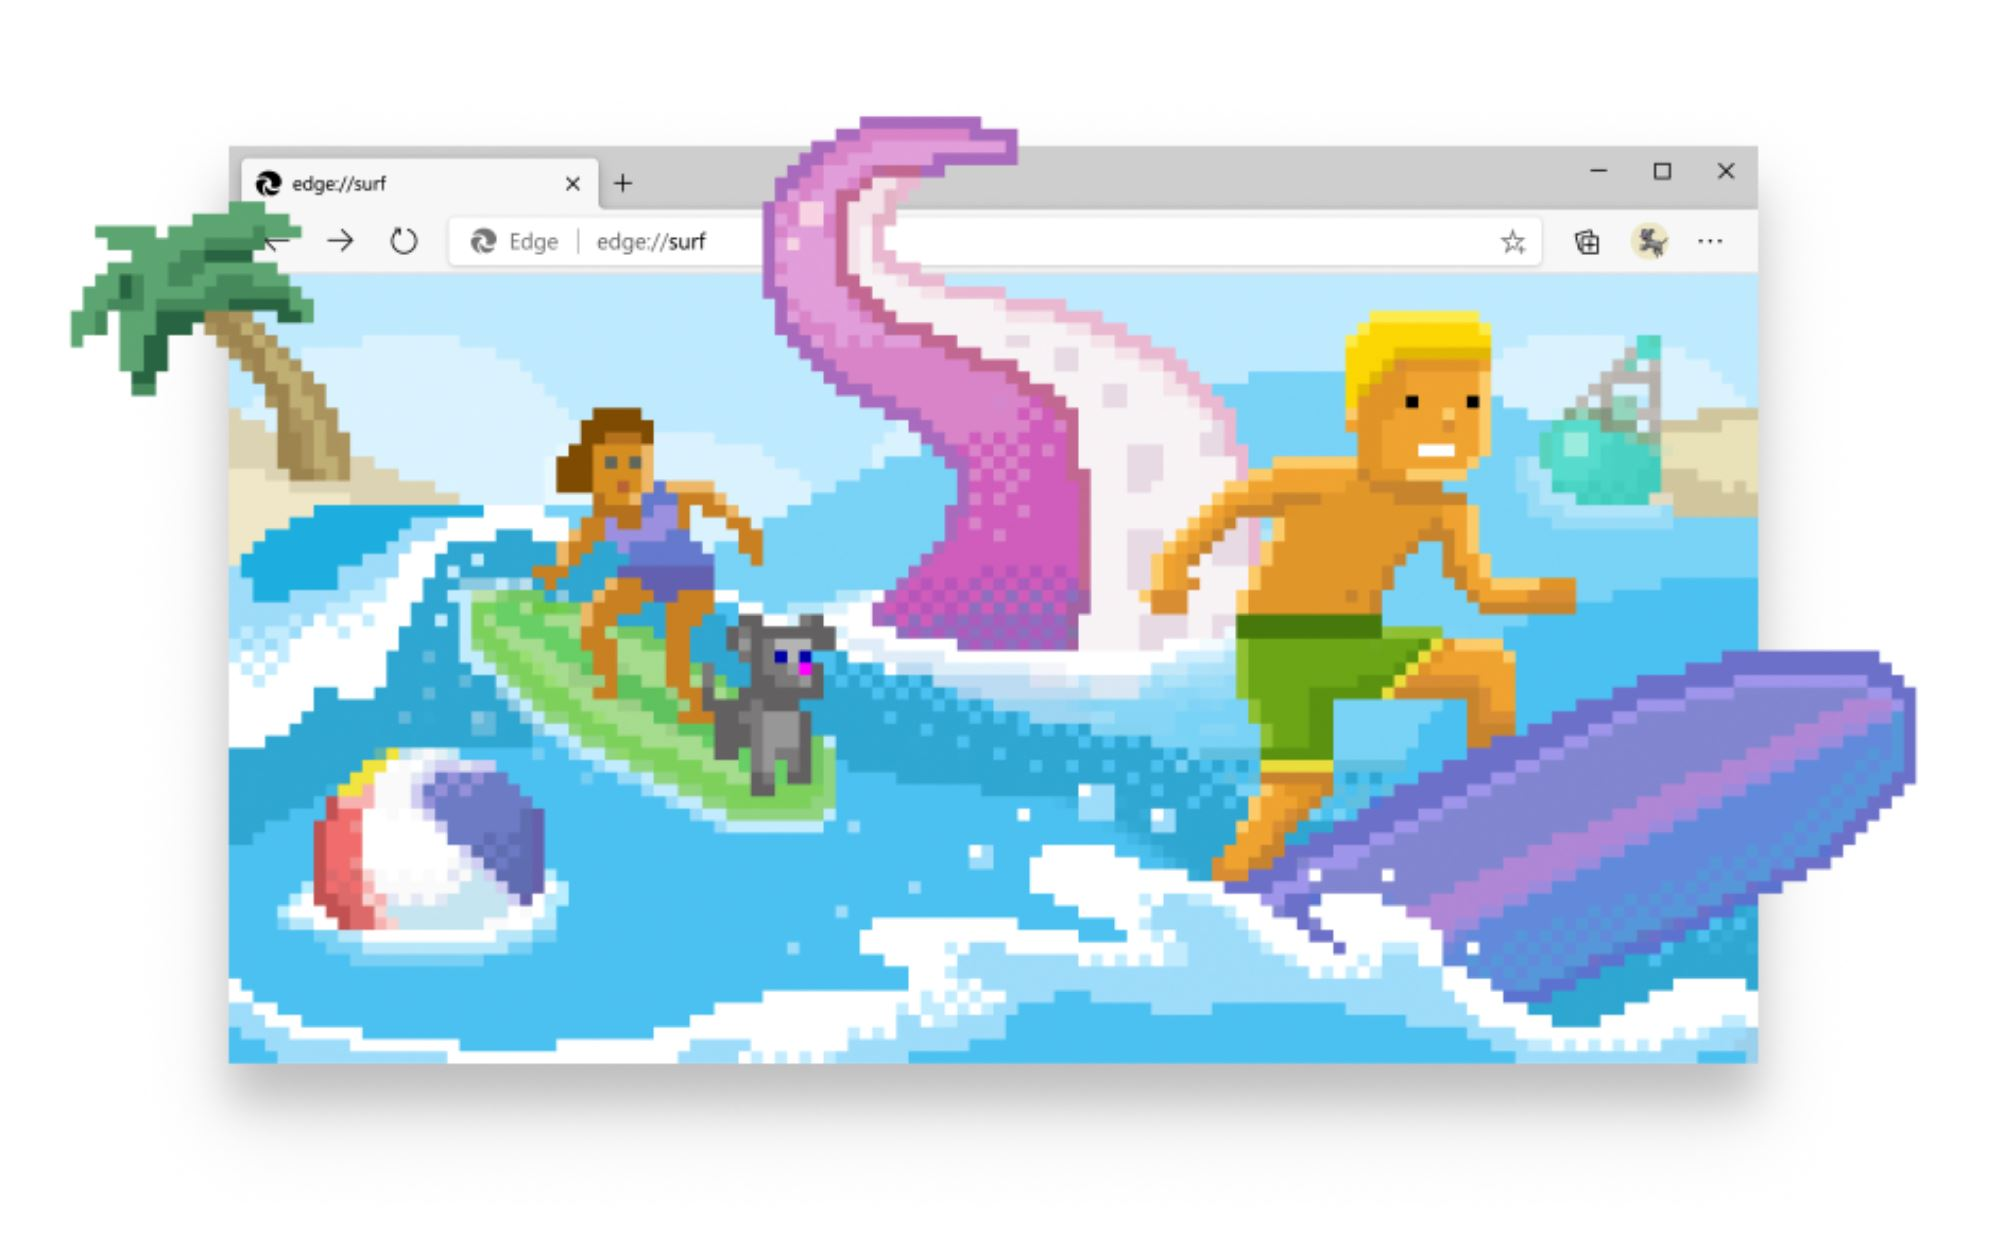 The new surf game in Microsoft Edge now available for everyone